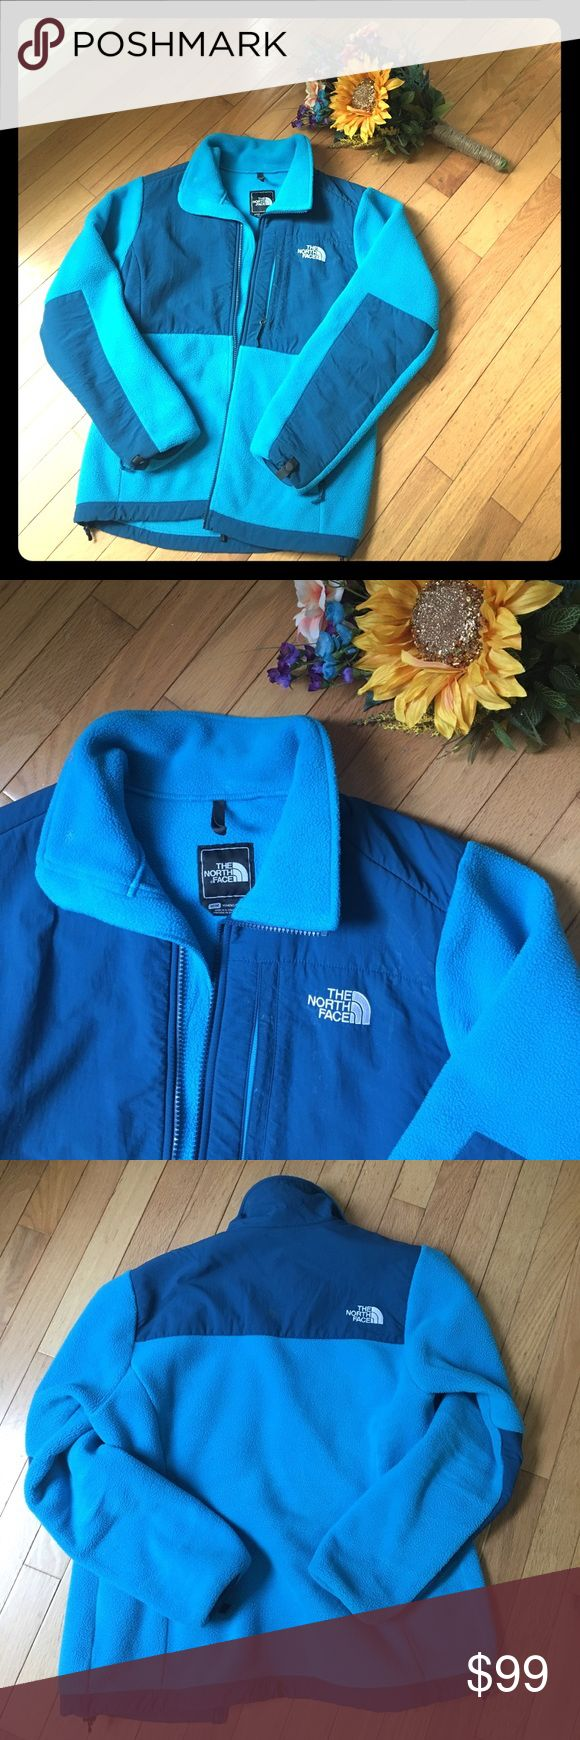 ❄️❄️The North Face Denali Women's Fleece jacket In Acoustic blue, this North Face Denali women's fleece is a favorite. Like new! Worn less than five times. This will provide comfort and warmth! Beautiful color! You will love this piece! As always, Bundle for discounts! ❤️💚 The North Face Jackets & Coats